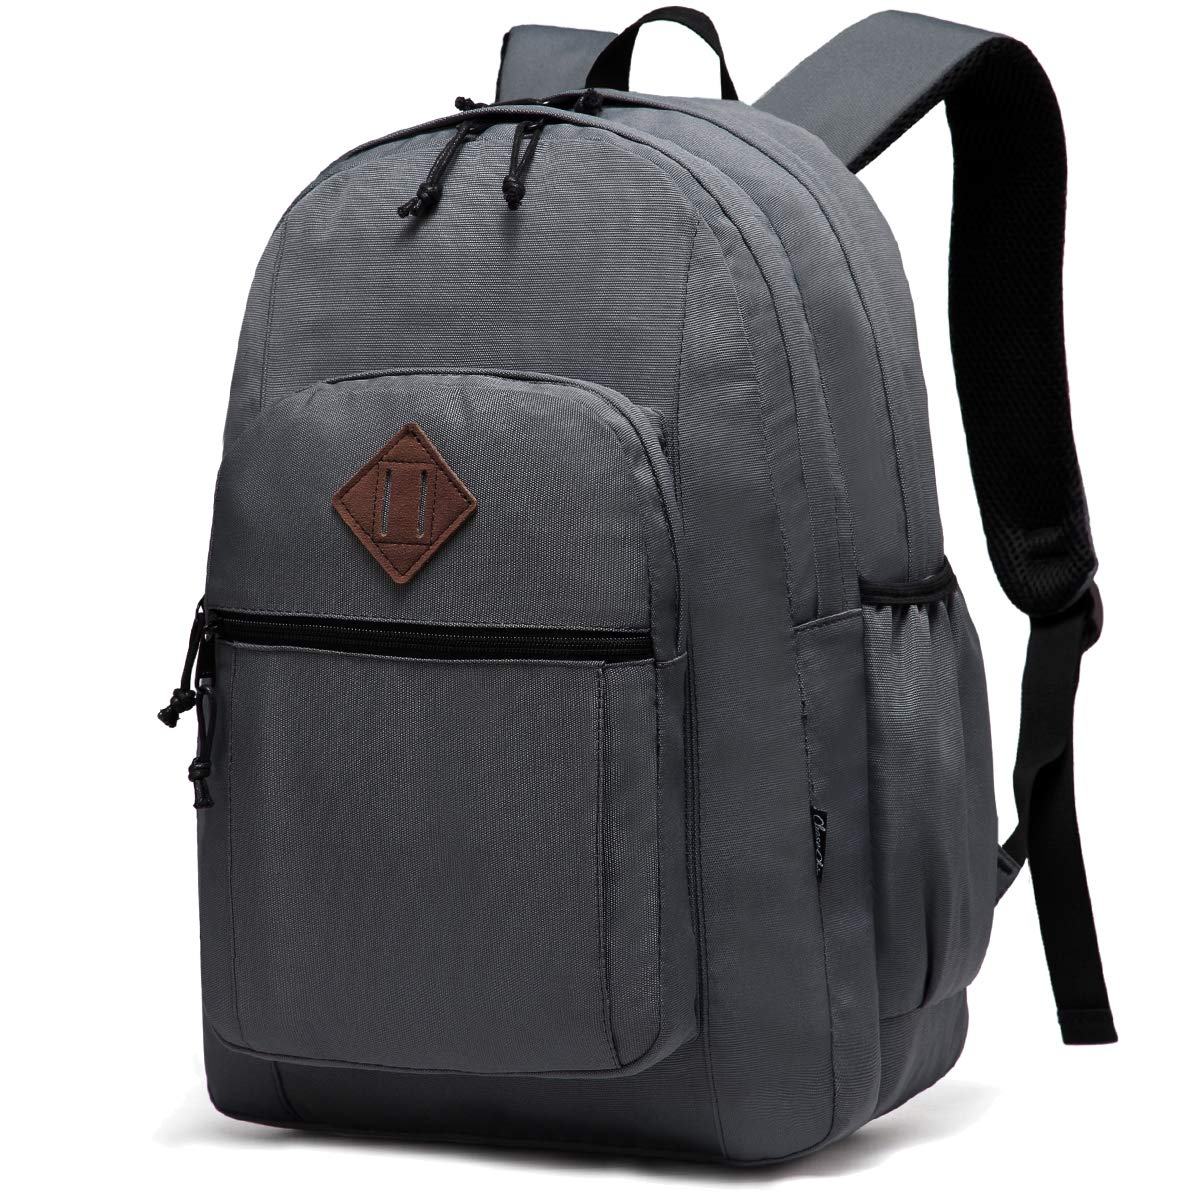 School Backpack for Men, Chasechic Water-Resistant Classic Lightweight Dual Compartments College Bookbag Unisex Travel Rucksack Gray by Chase Chic